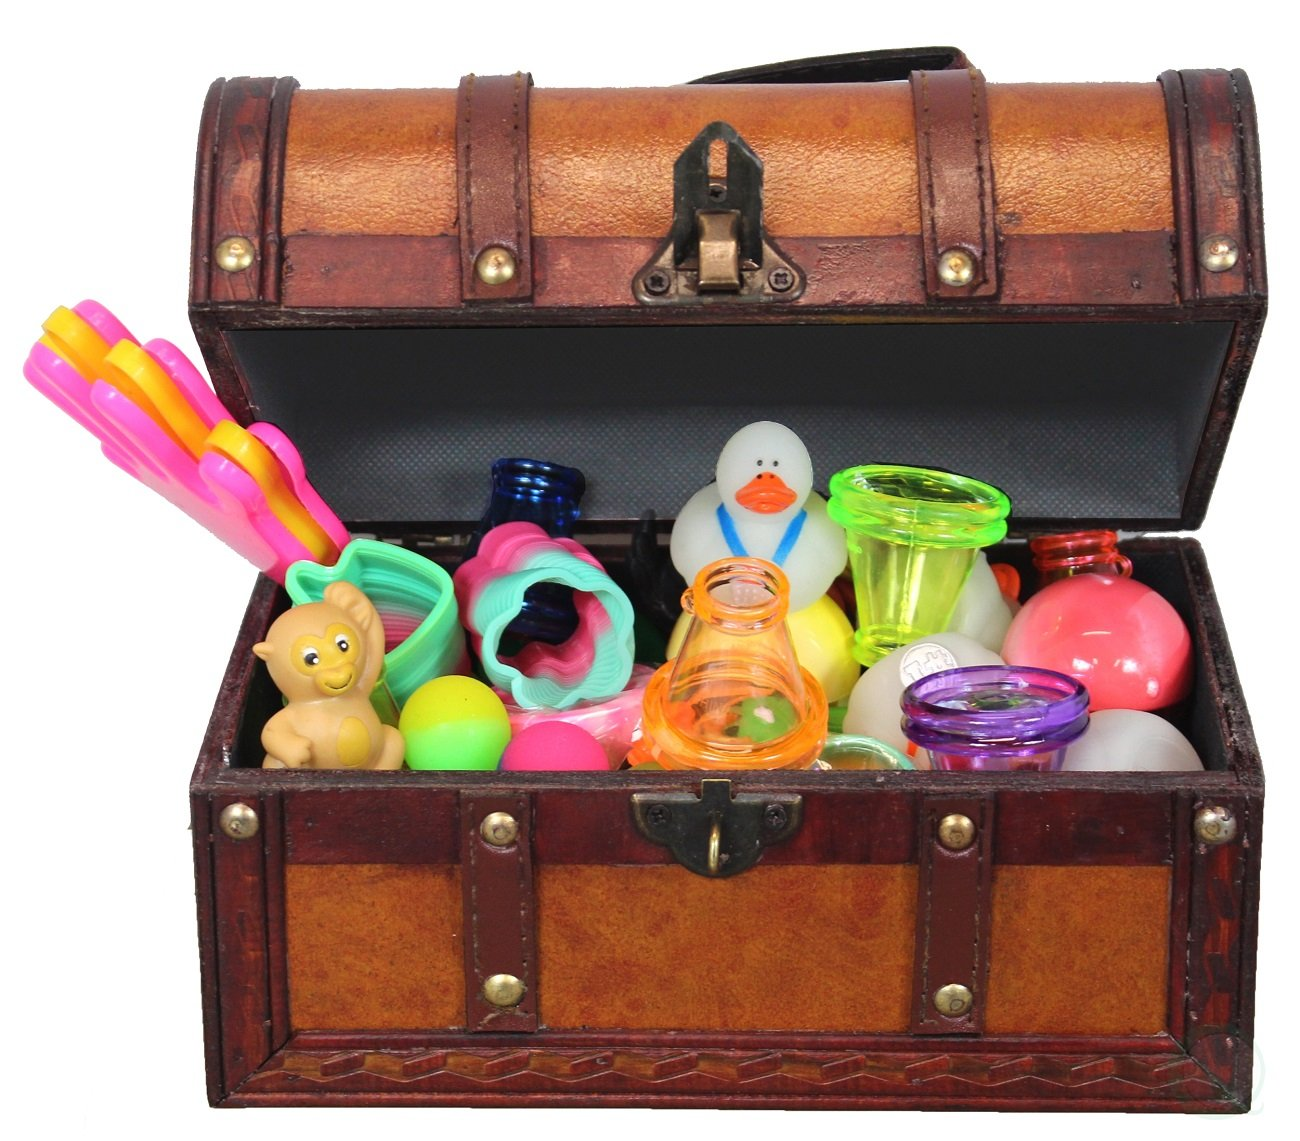 Leather Treasure Chest Full of Toys (Treasure Box and 50 Toy Pcs) by Decorative Gifts